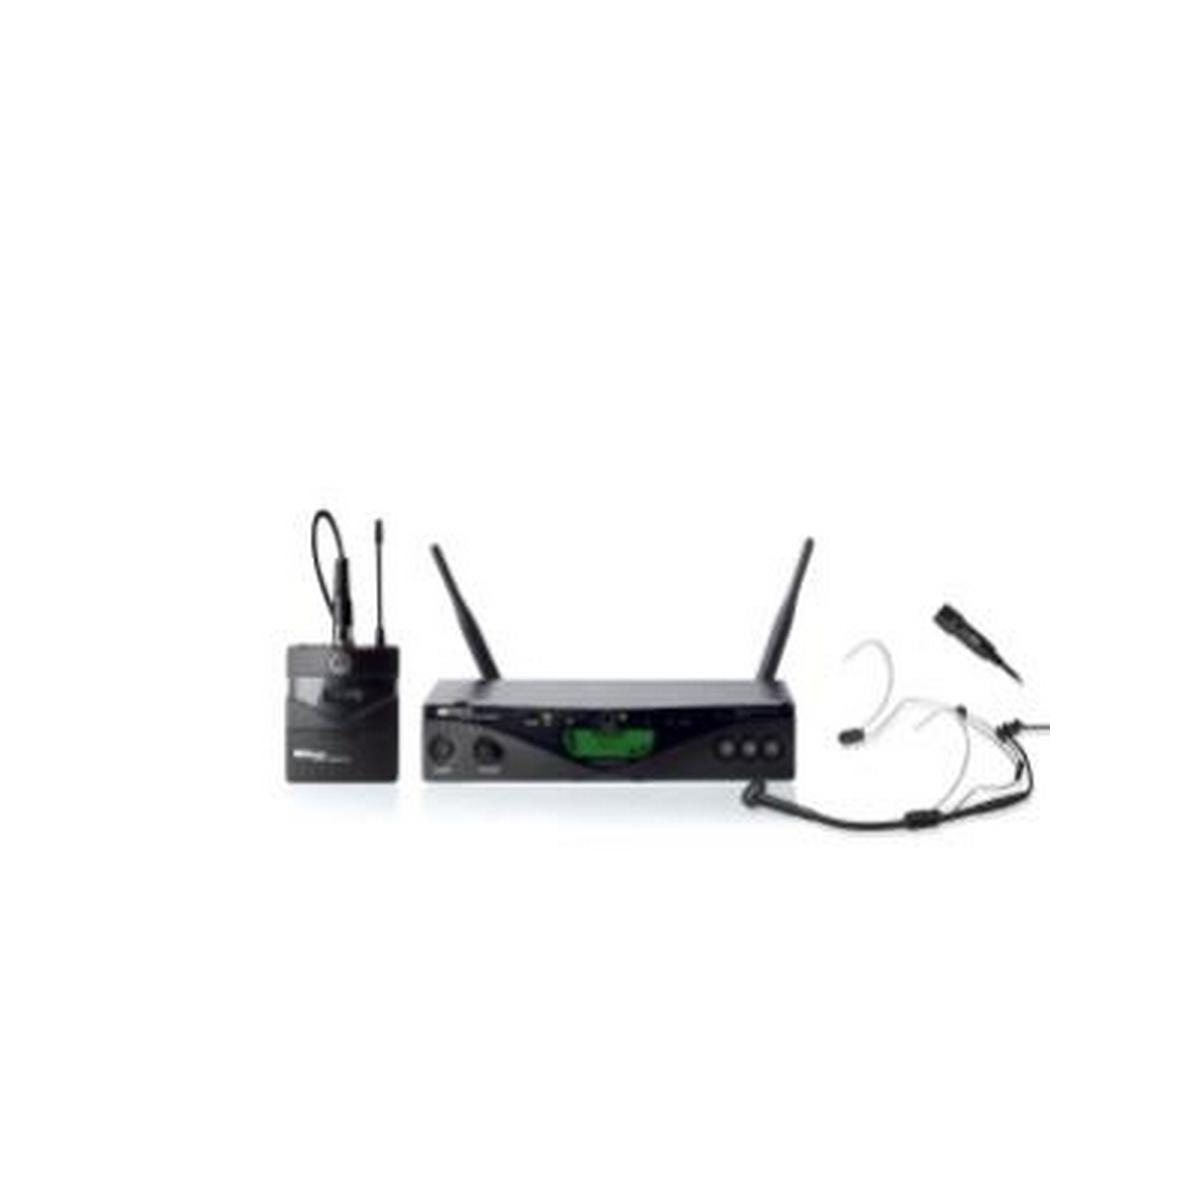 AKG WMS470 PRES SET BD7 50mW - Wireless bodypack microphone system, SR470 stationary receiver, PT470 bodypack transmitter, C555L headworn microphone, CK99L lavalier microphone, tie clip, belt clip, LR6 AA battery, power supply and rack mount unit included.